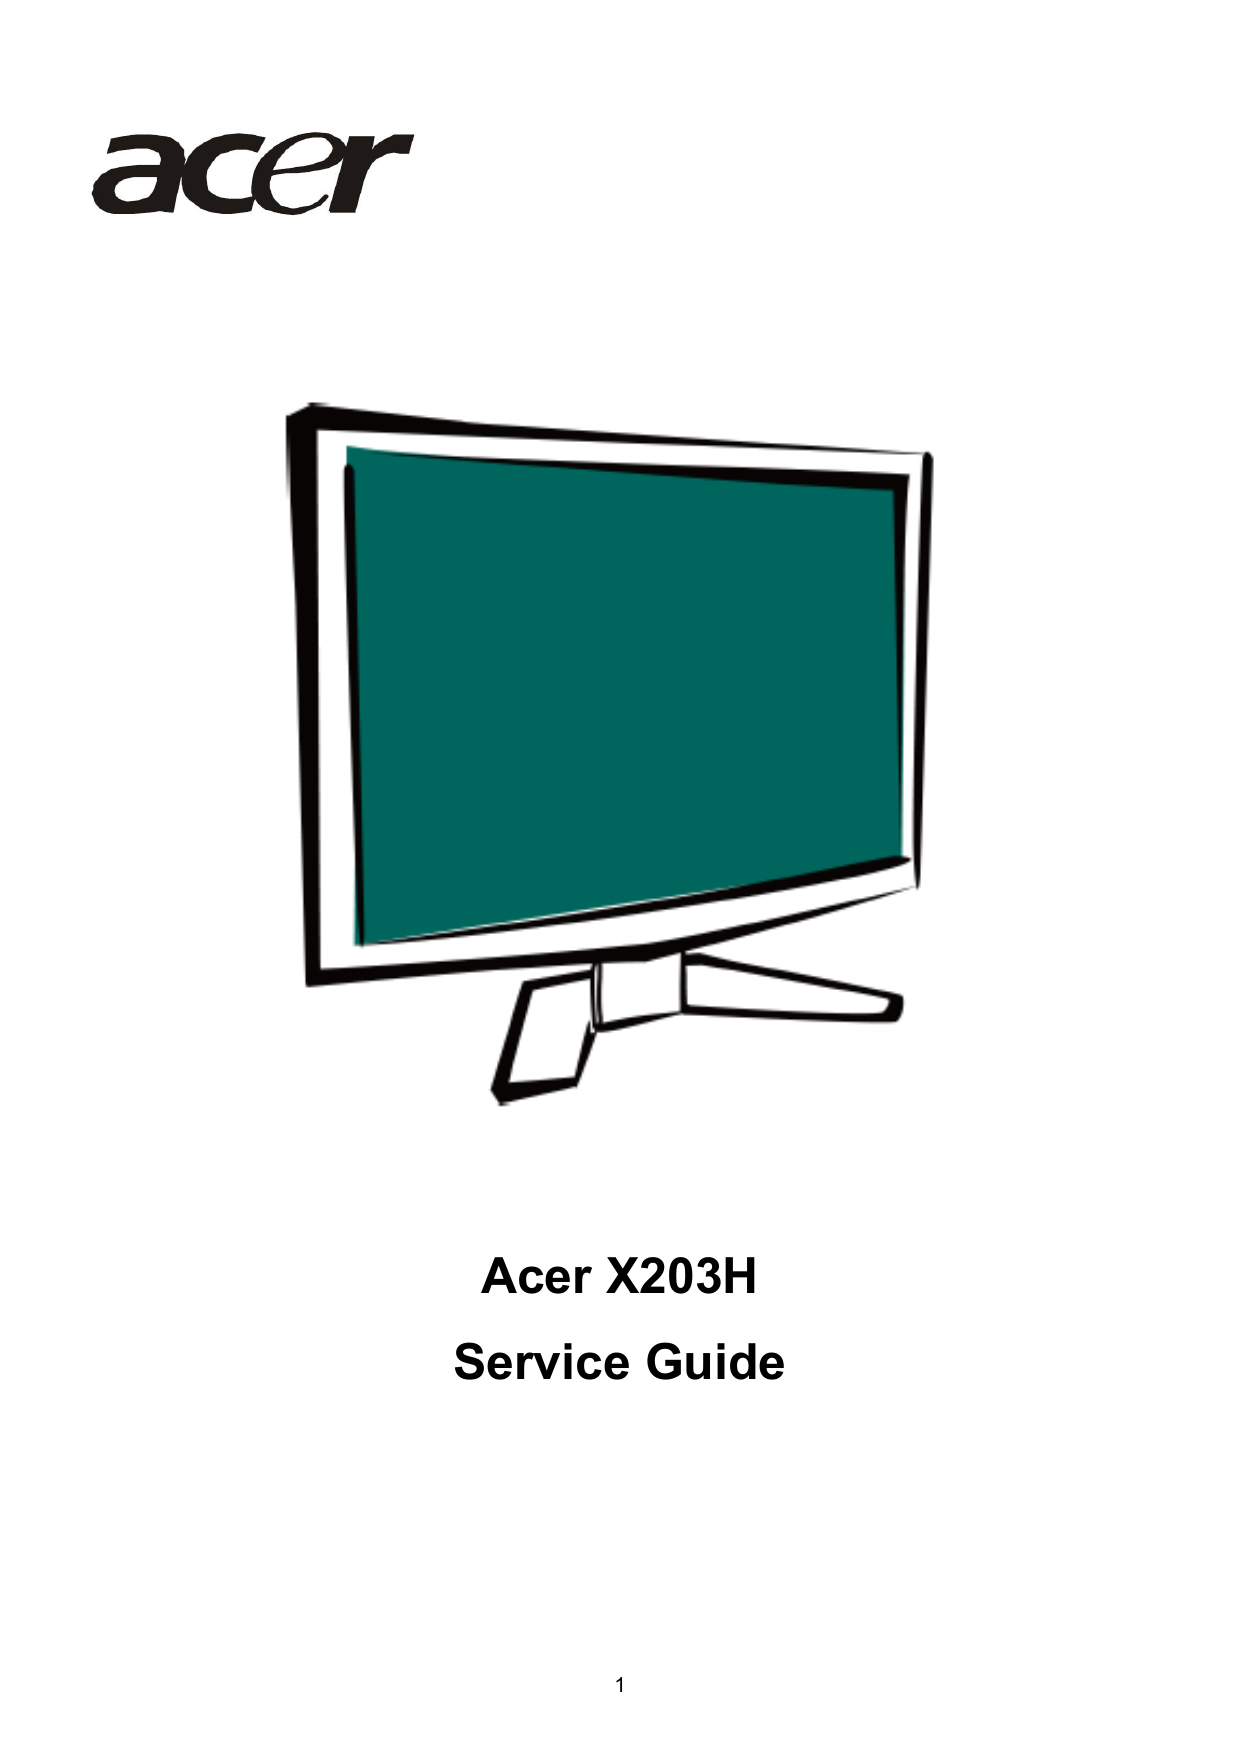 acer x203h service guide